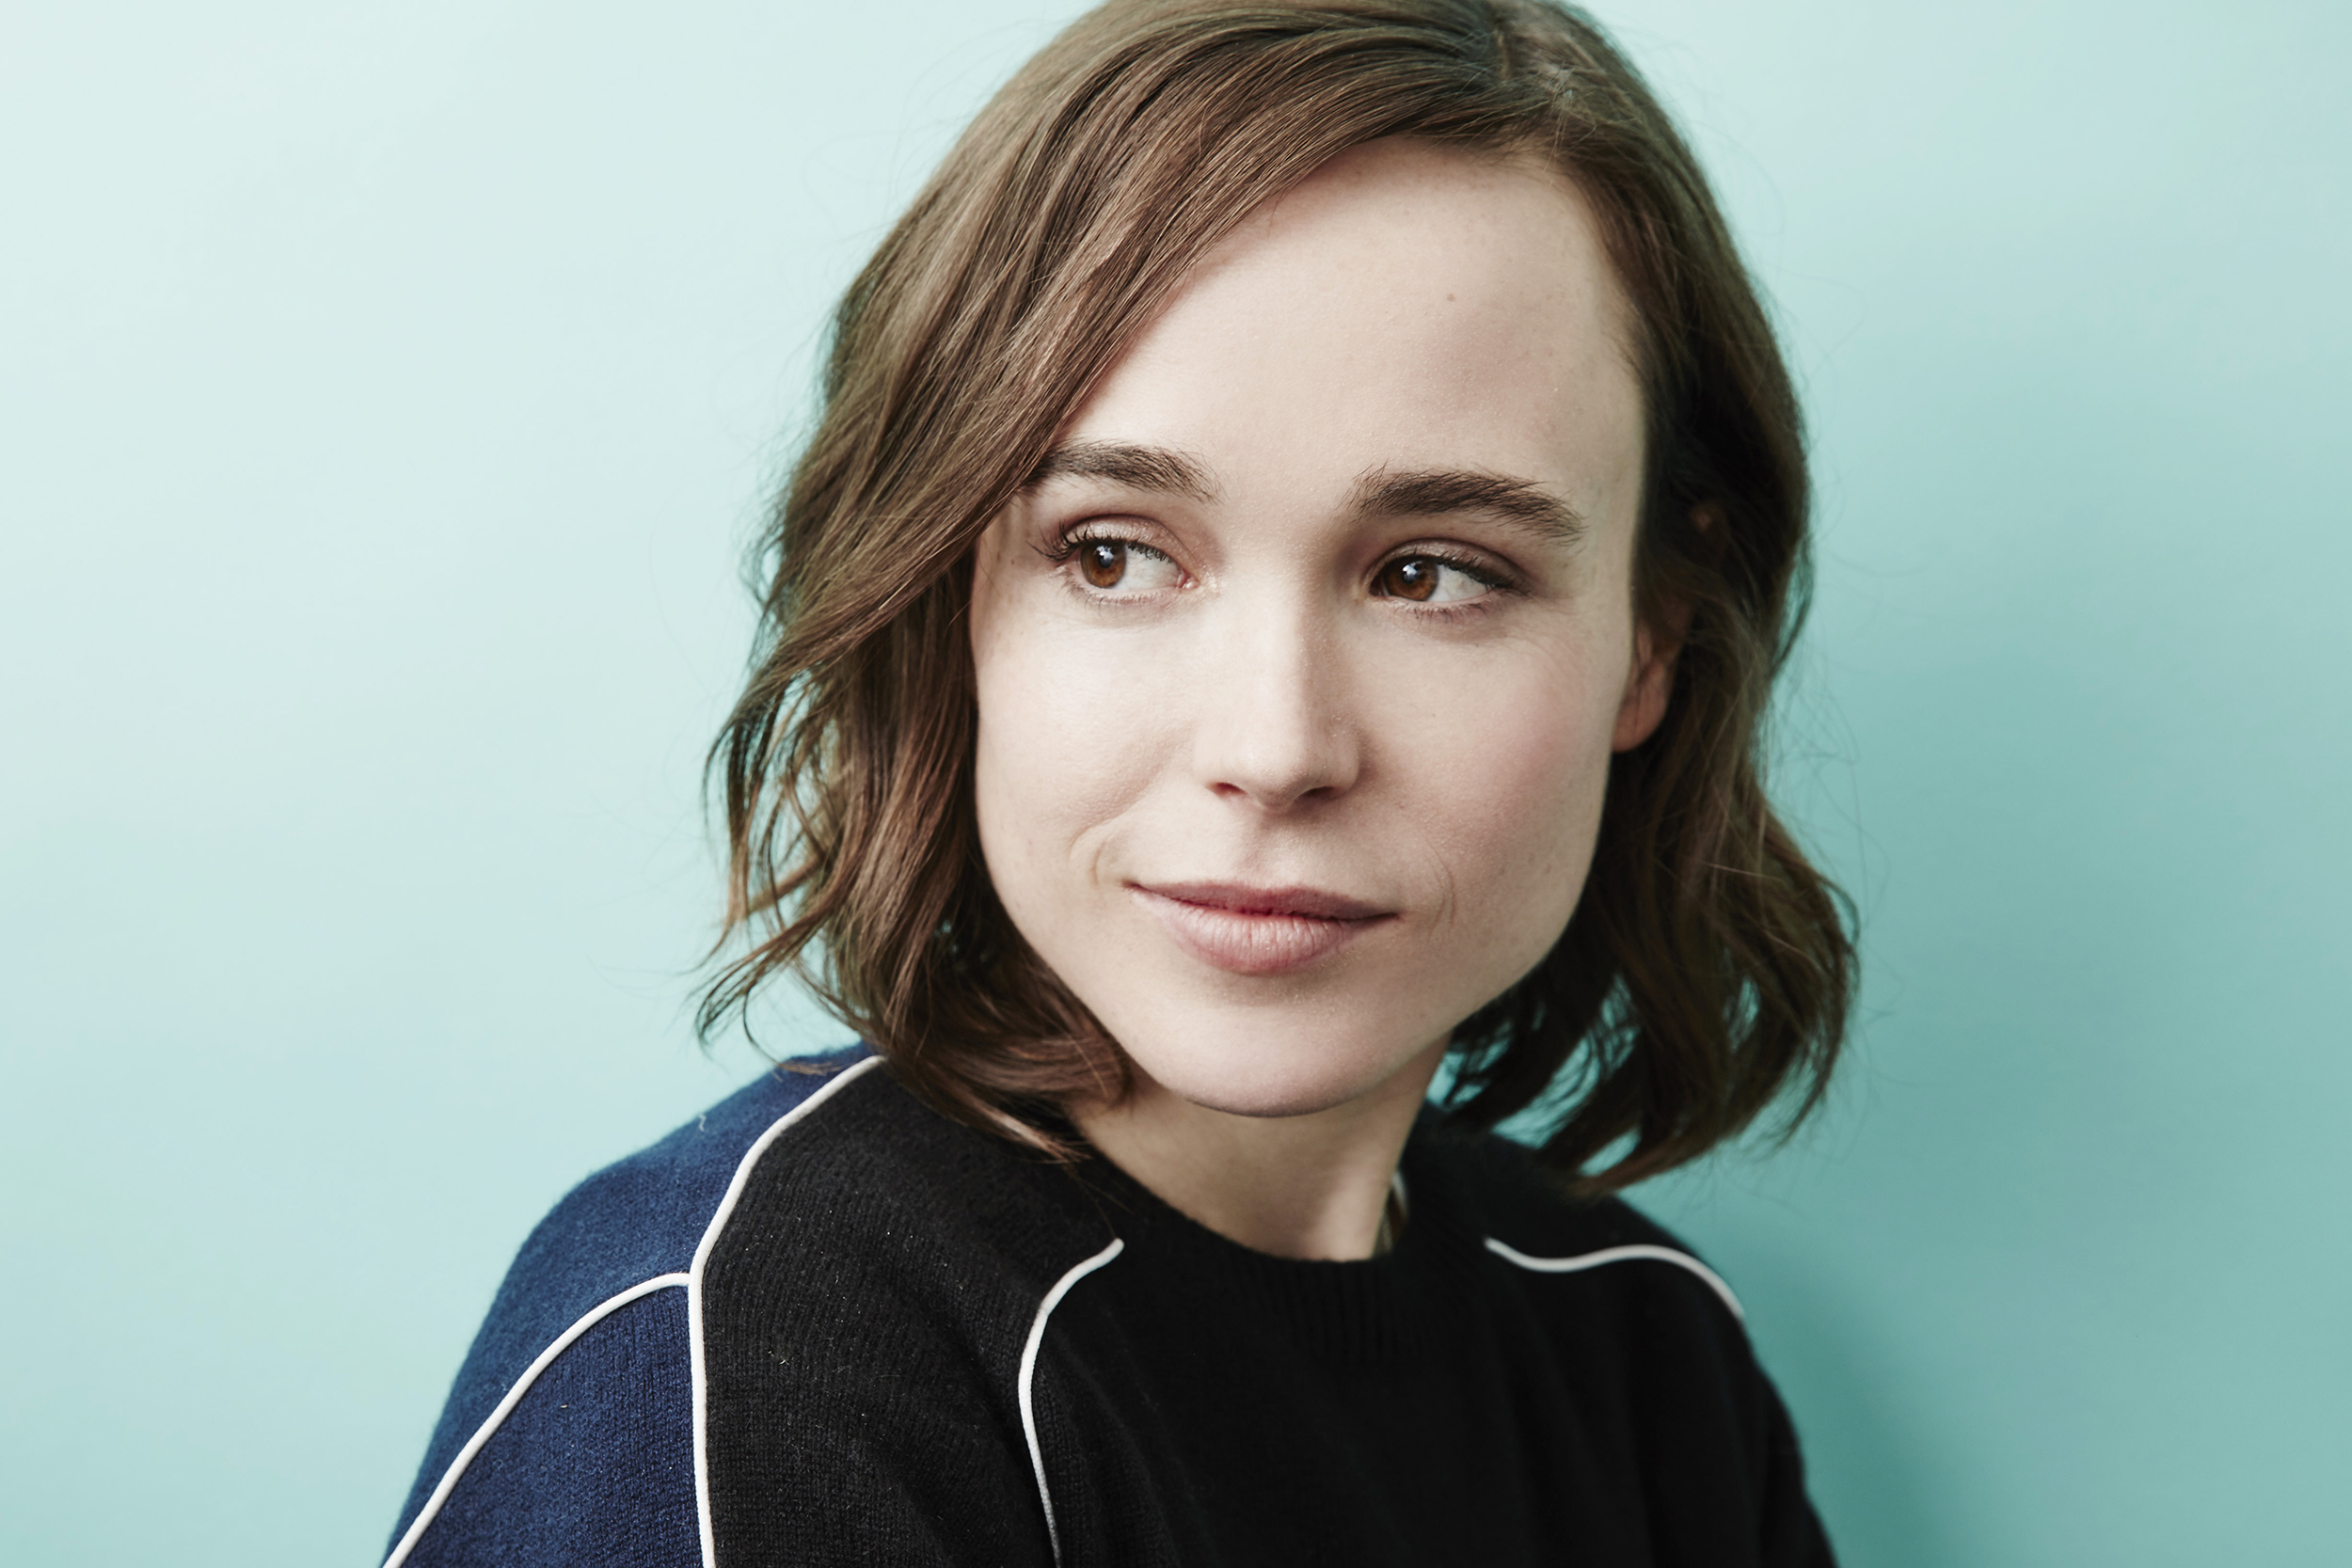 Ellen Page of 'Tallulah' poses at the 2016 Sundance Film Festival Getty Images Portrait Studio in Park City, Utah on Jan. 24, 2016.